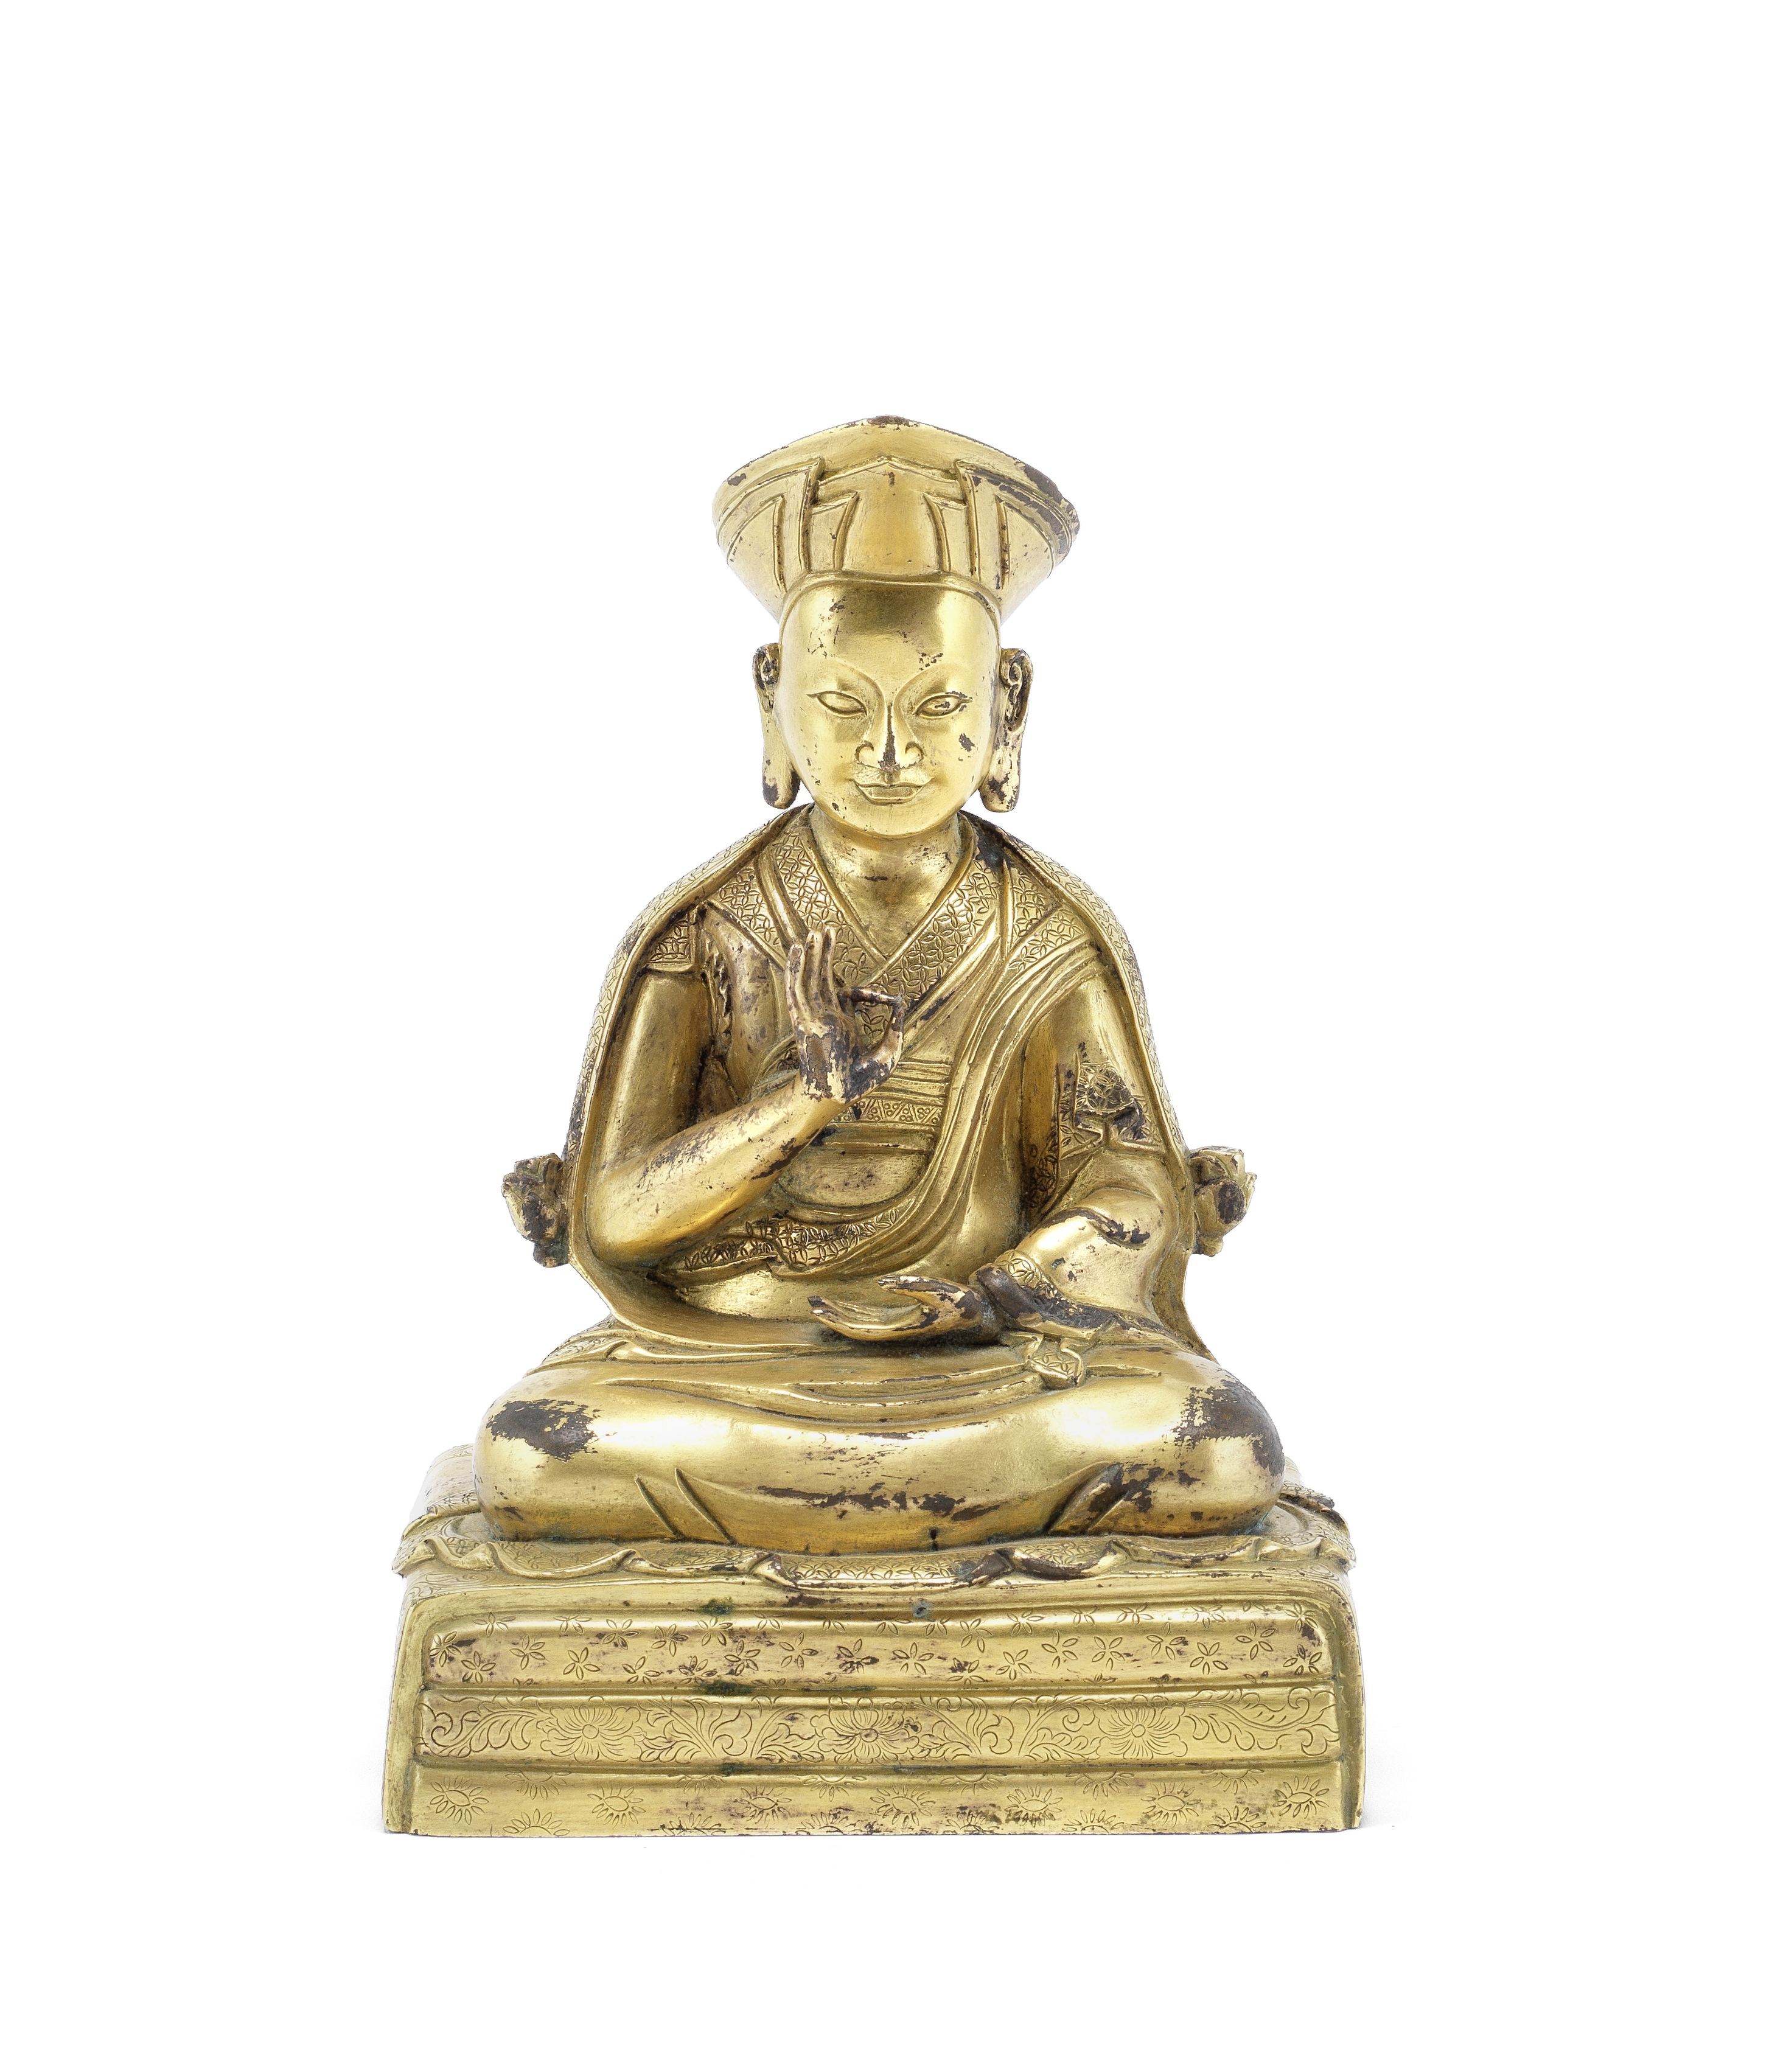 A GILT-BRONZE COPPER-ALLOY FIGURE OF A LAMA Tibet, possibly 18th century